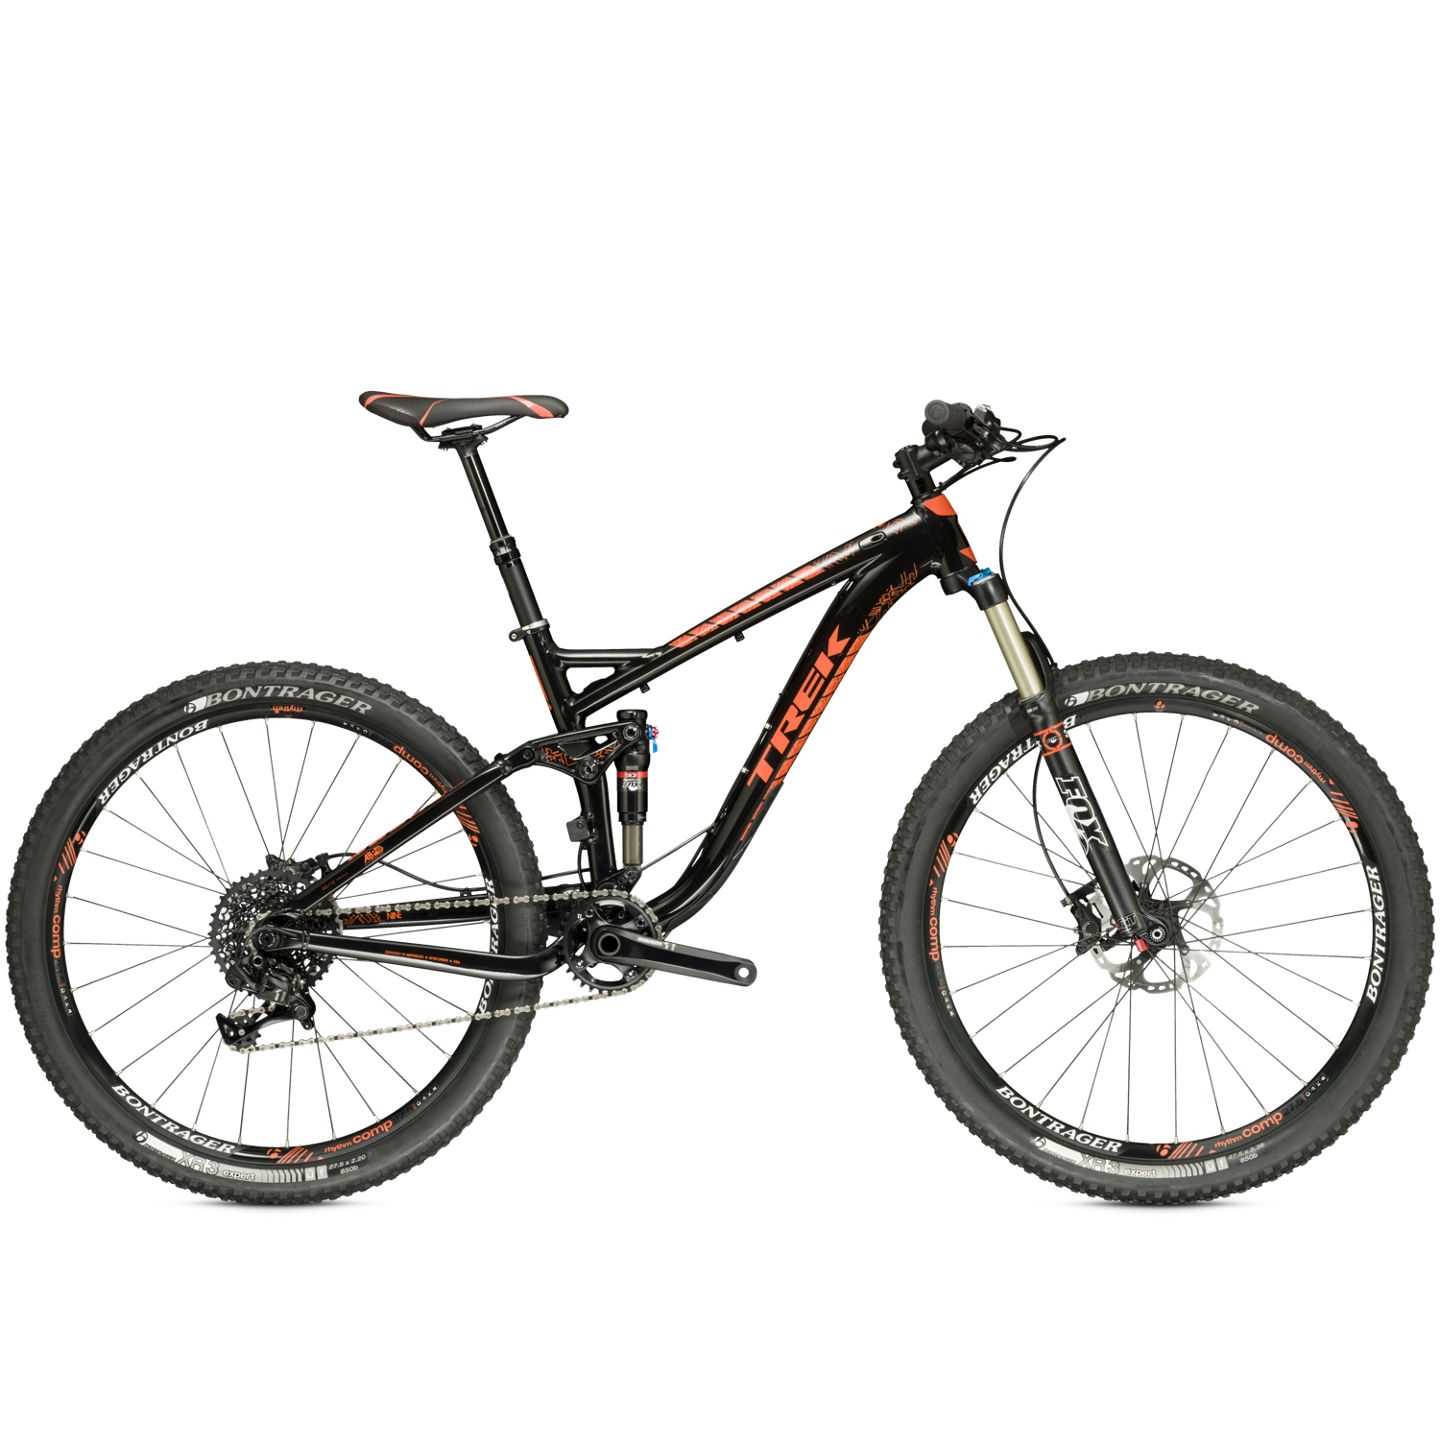 VTT tout-suspendu Trek Fuel EX 9 27.5 (Trek Black/Rhymes with Orange) 2015 - 17,5 pouces